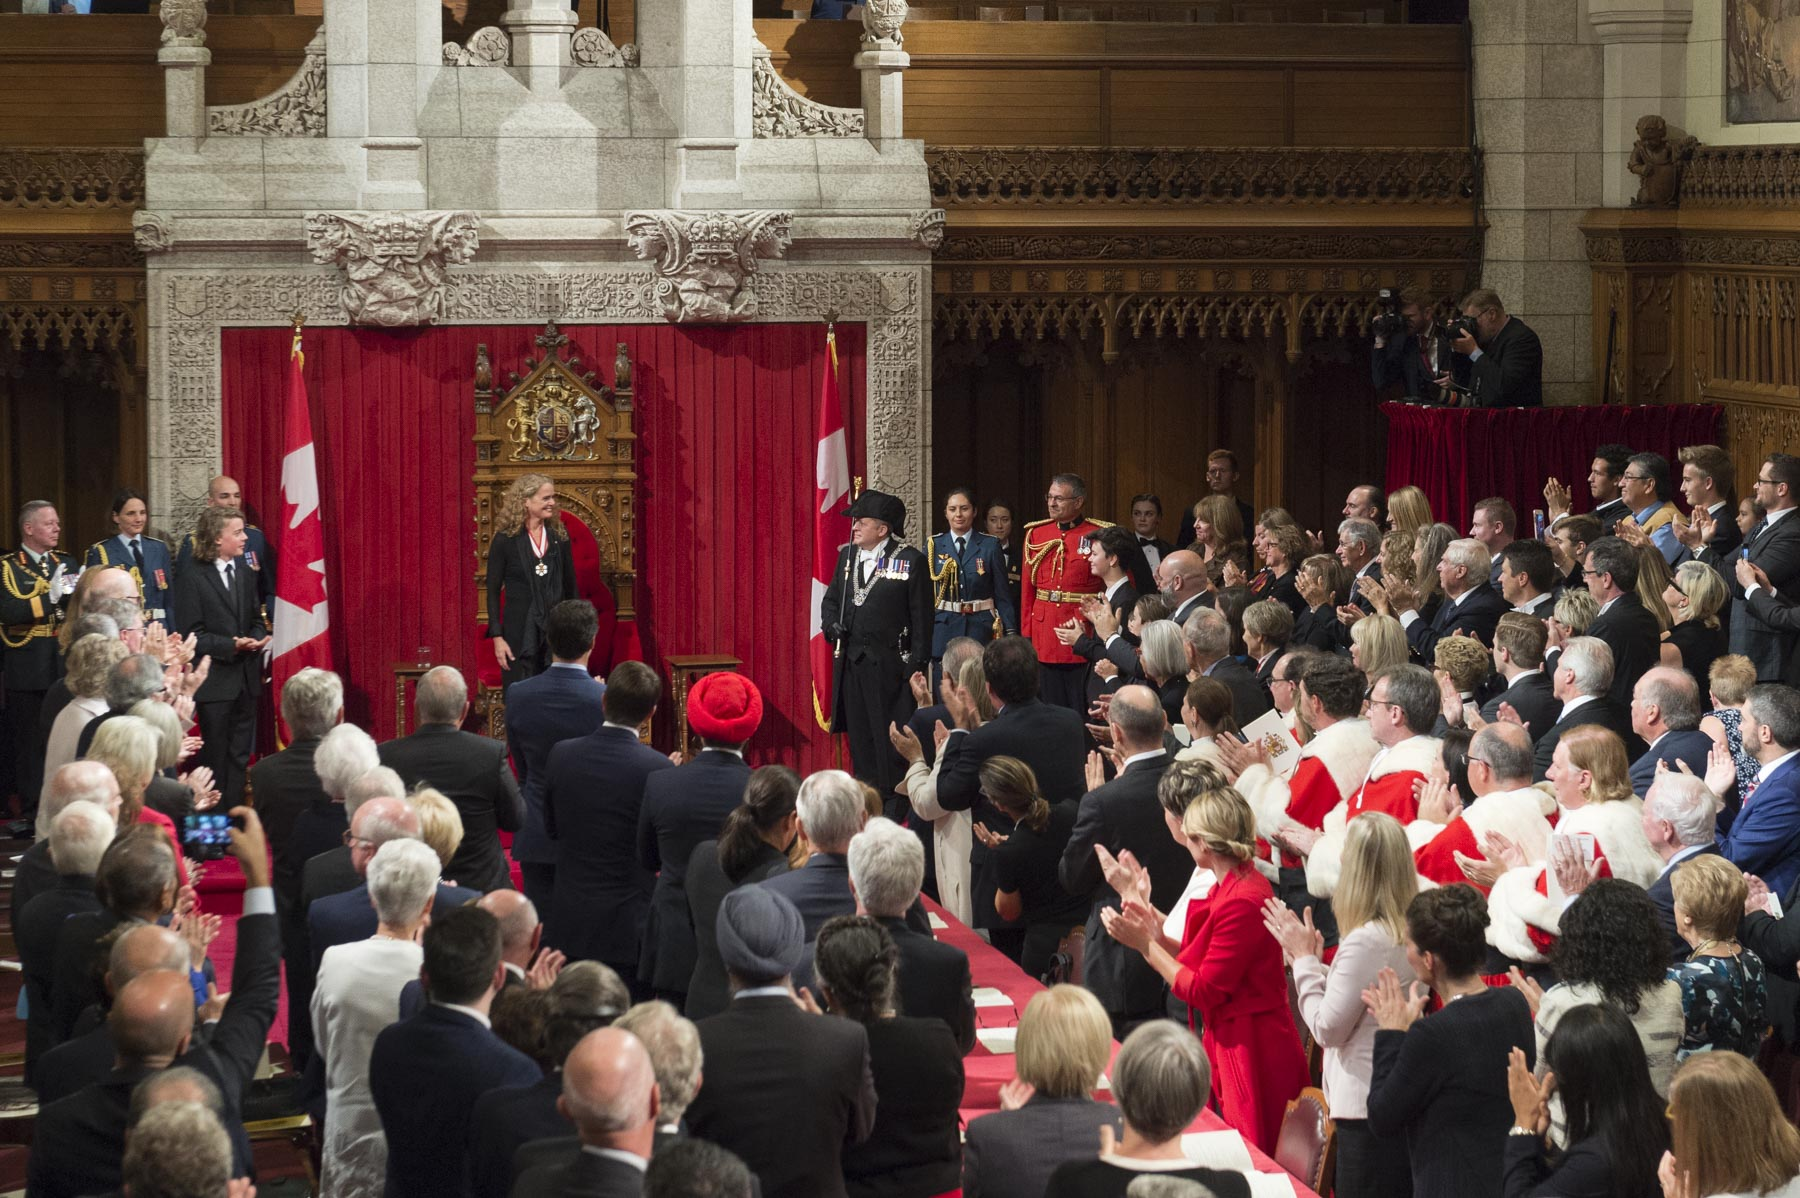 Those in attendance warmly applauded Ms. Payette as the new Governor General of Canada.